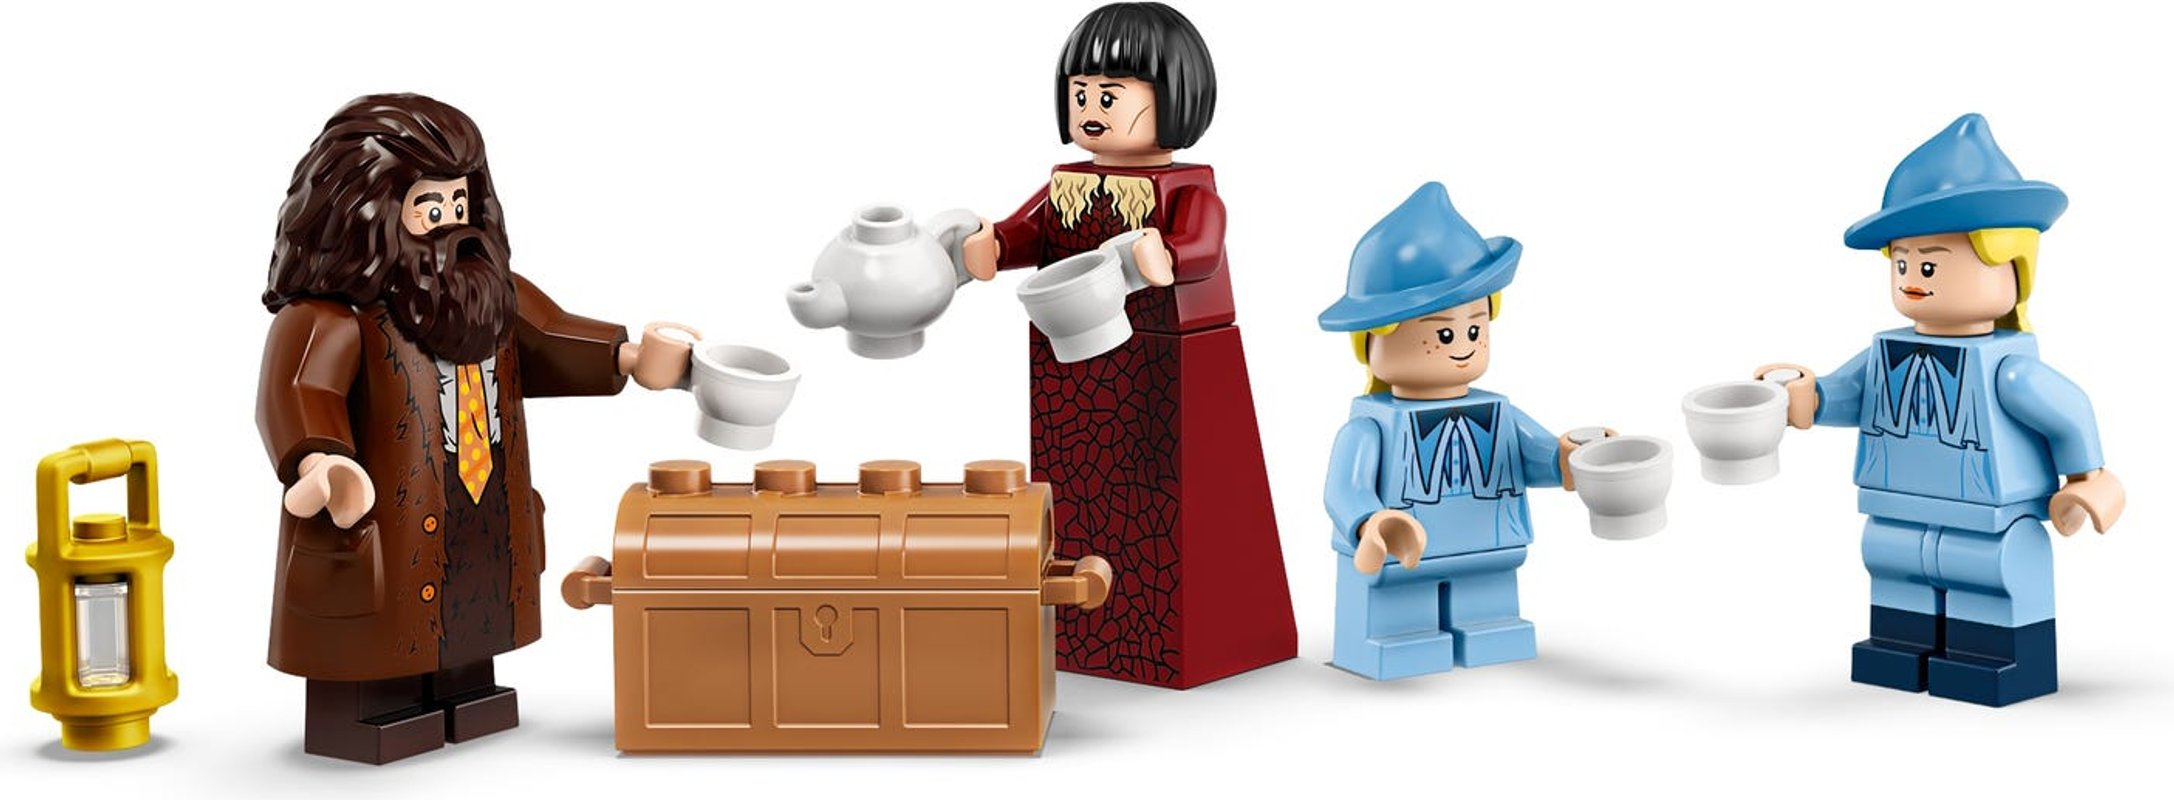 Beauxbatons' Carriage: Arrival at Hogwarts™ minifigures